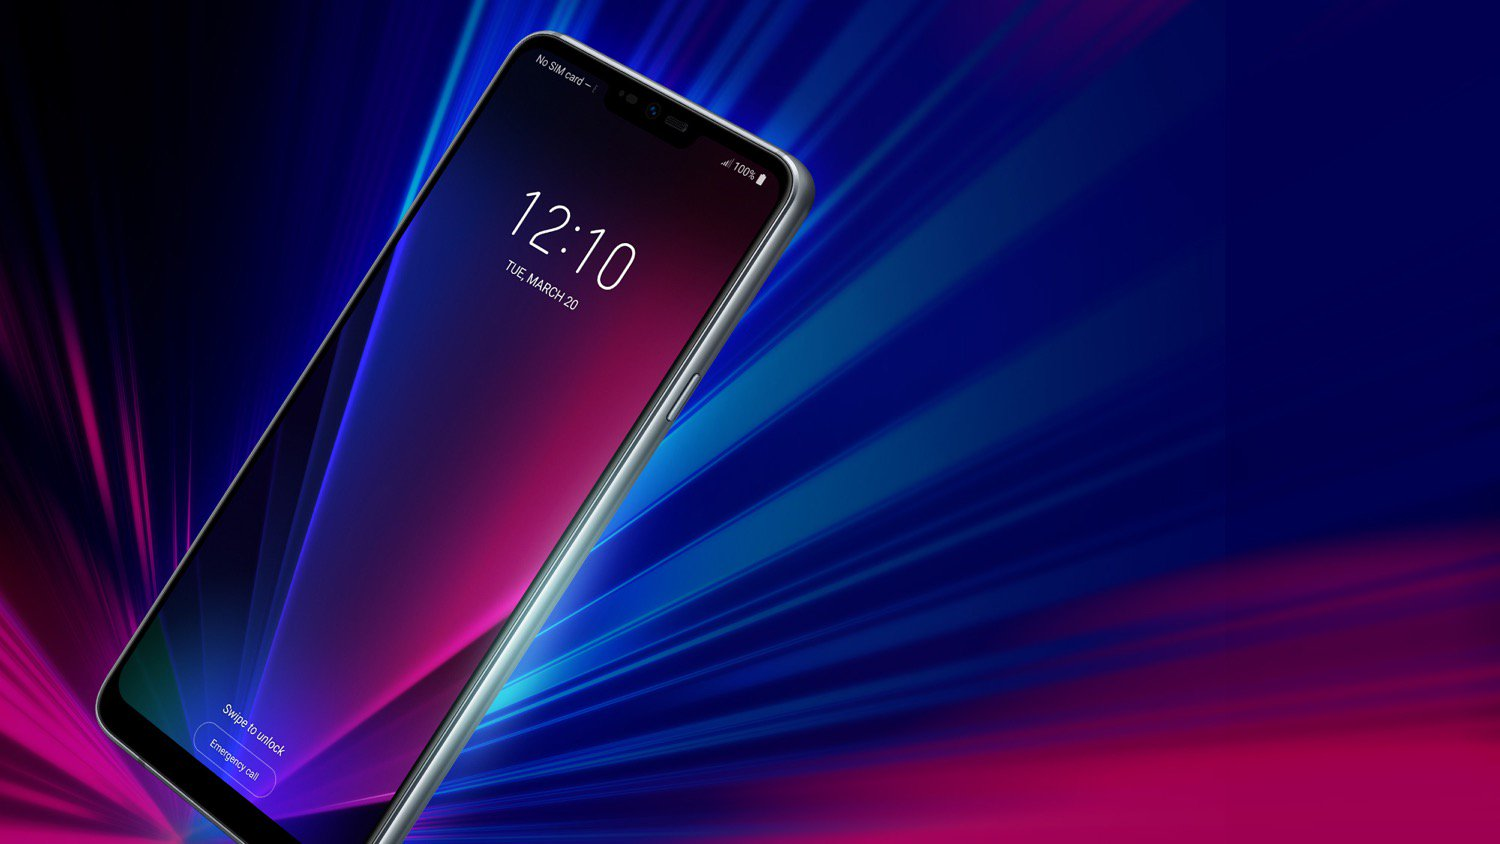 lg g7 thinkq specifications images